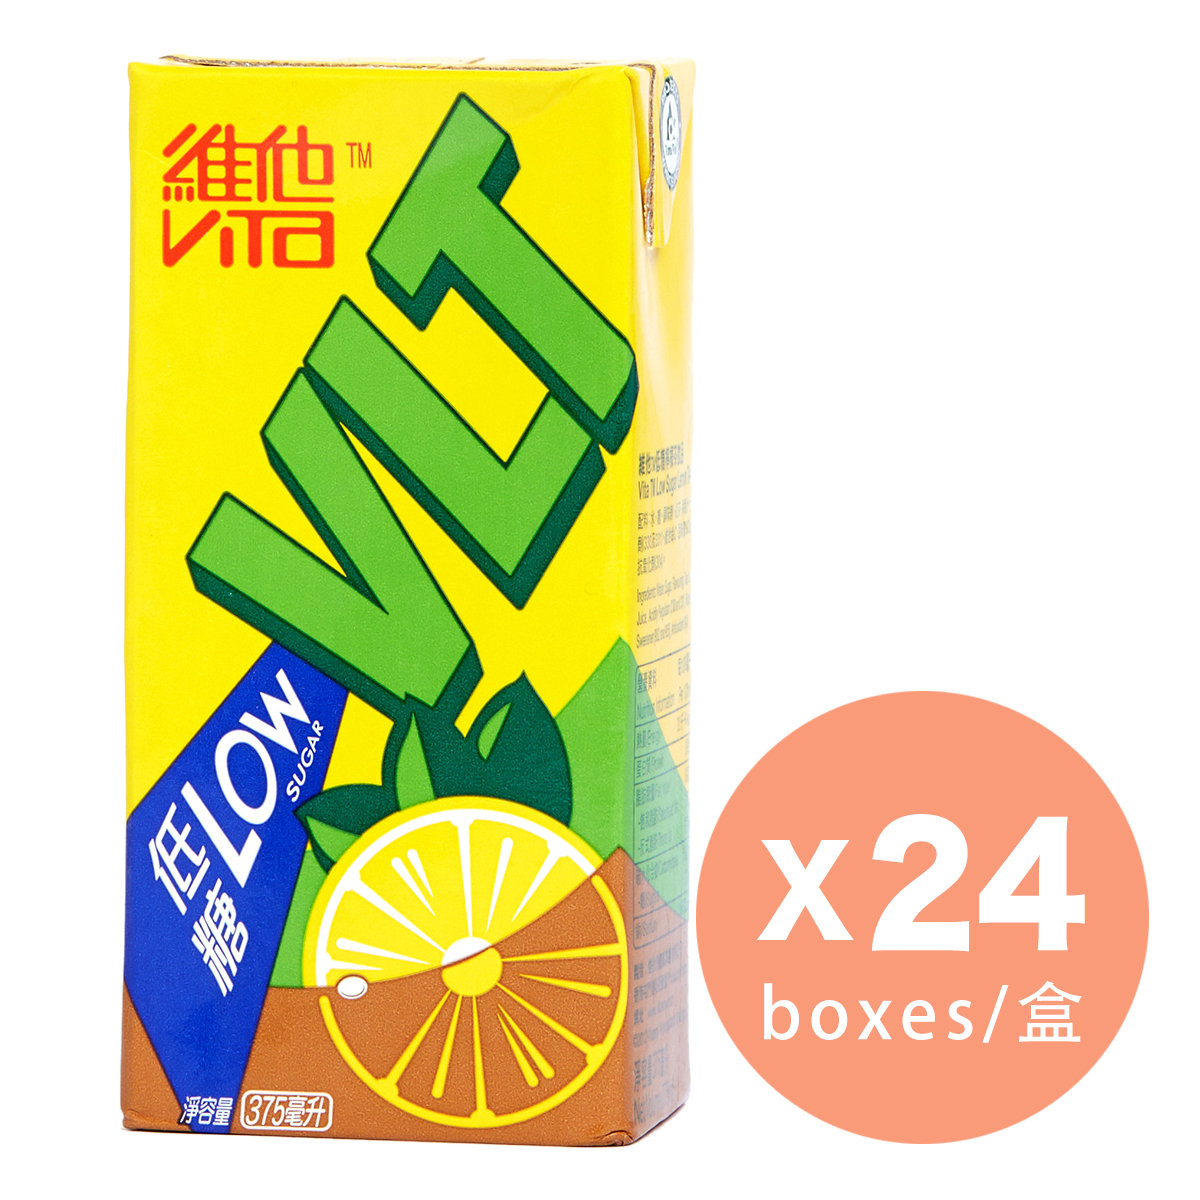 Low Sugar Lemon Tea x 24